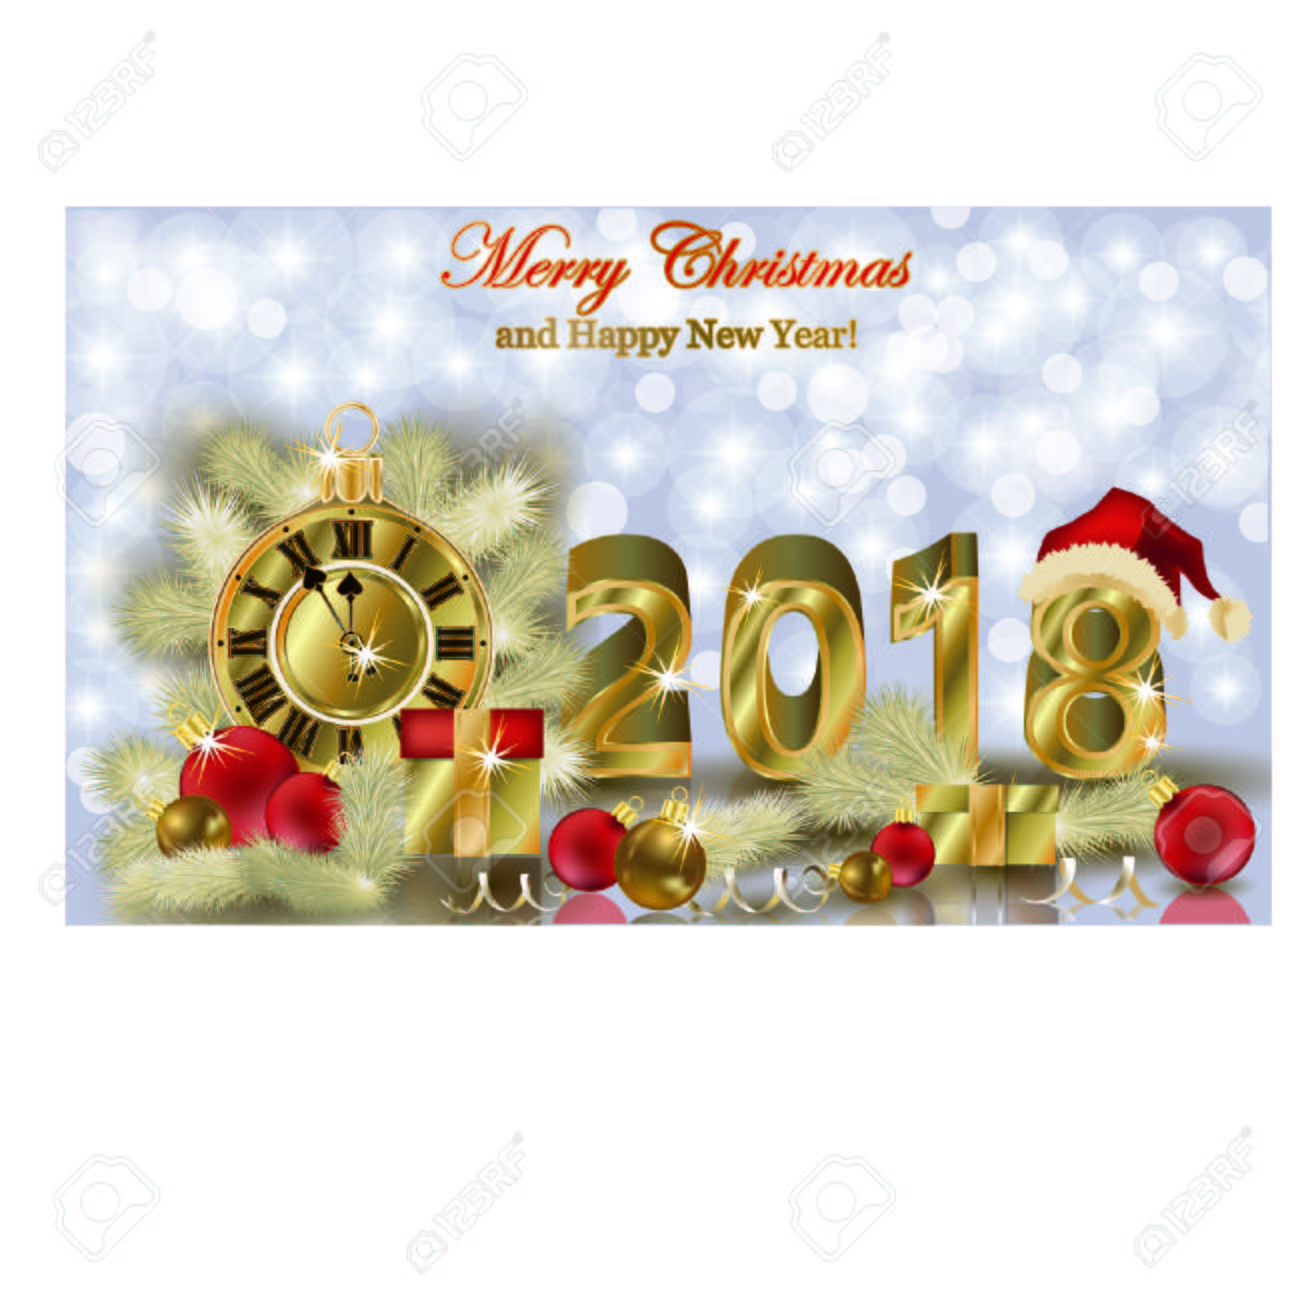 merry christmas and happy new year 2018 vector illustration stock vector 88281706